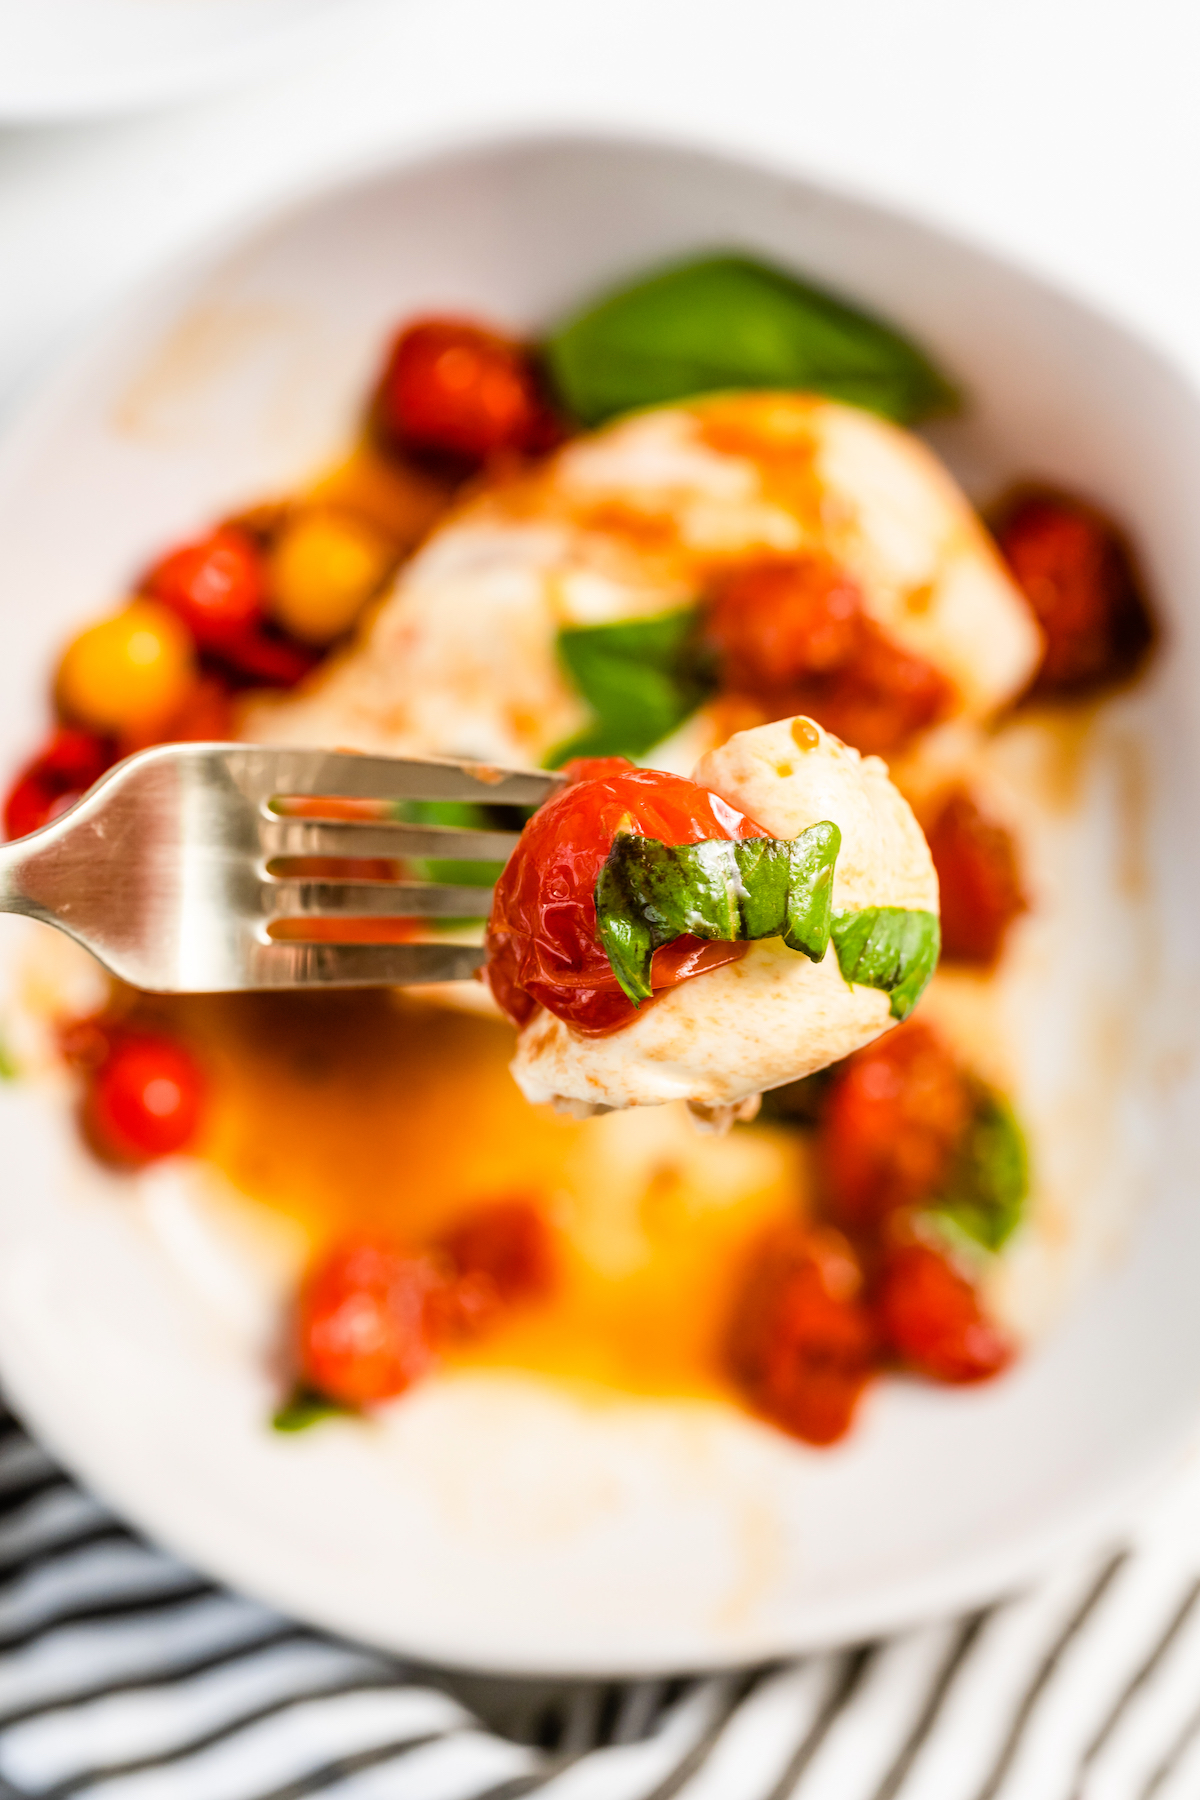 Forkful of chicken with a cherry tomato.